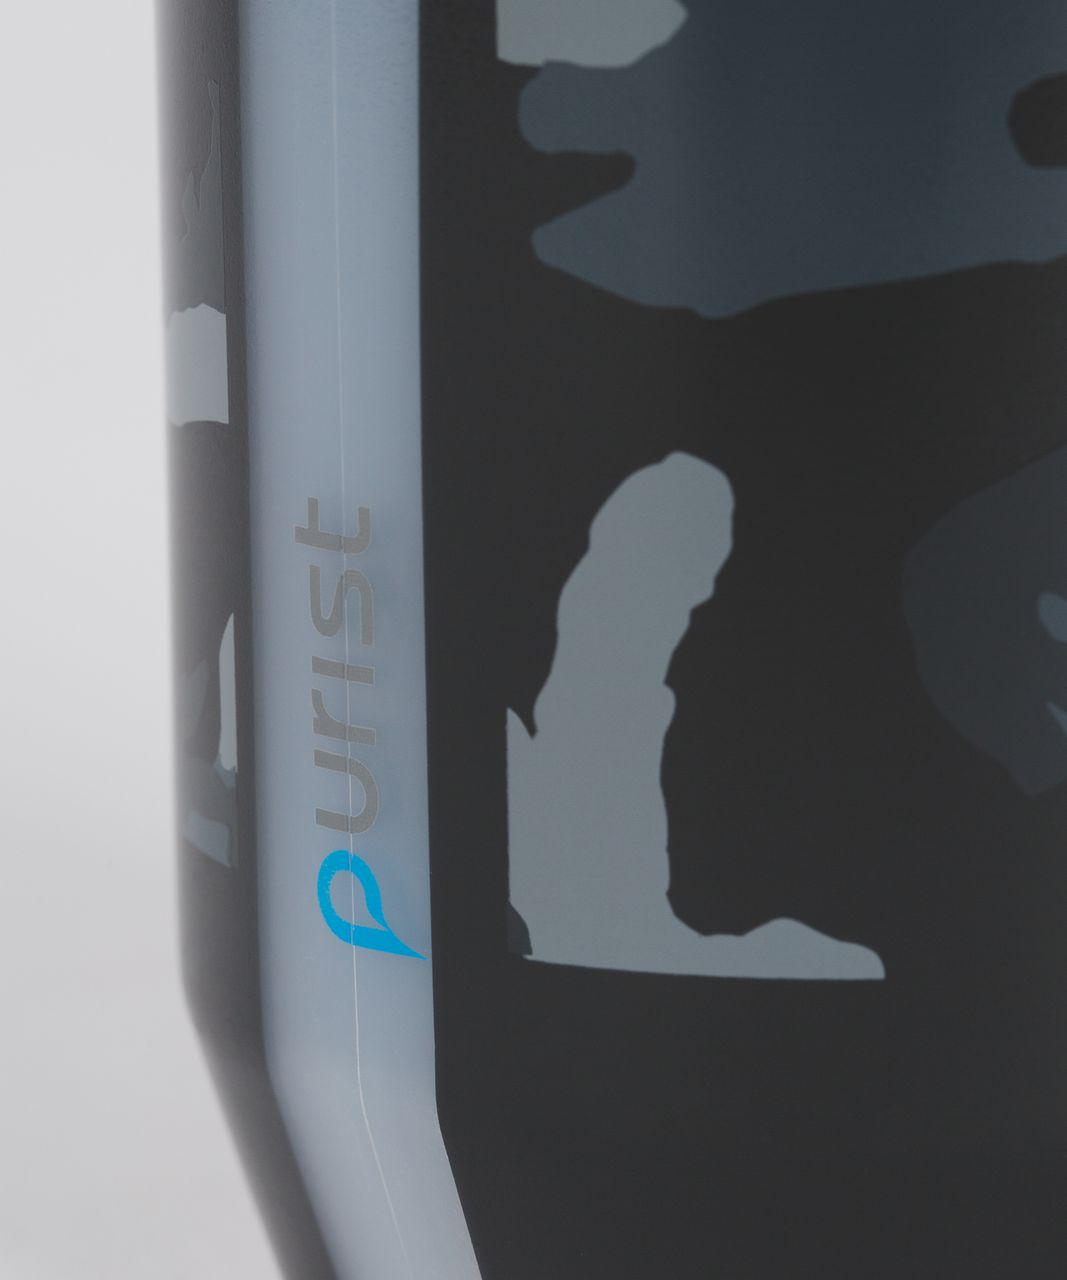 Lululemon Purist Cycling Waterbottle - Purist Black Camo